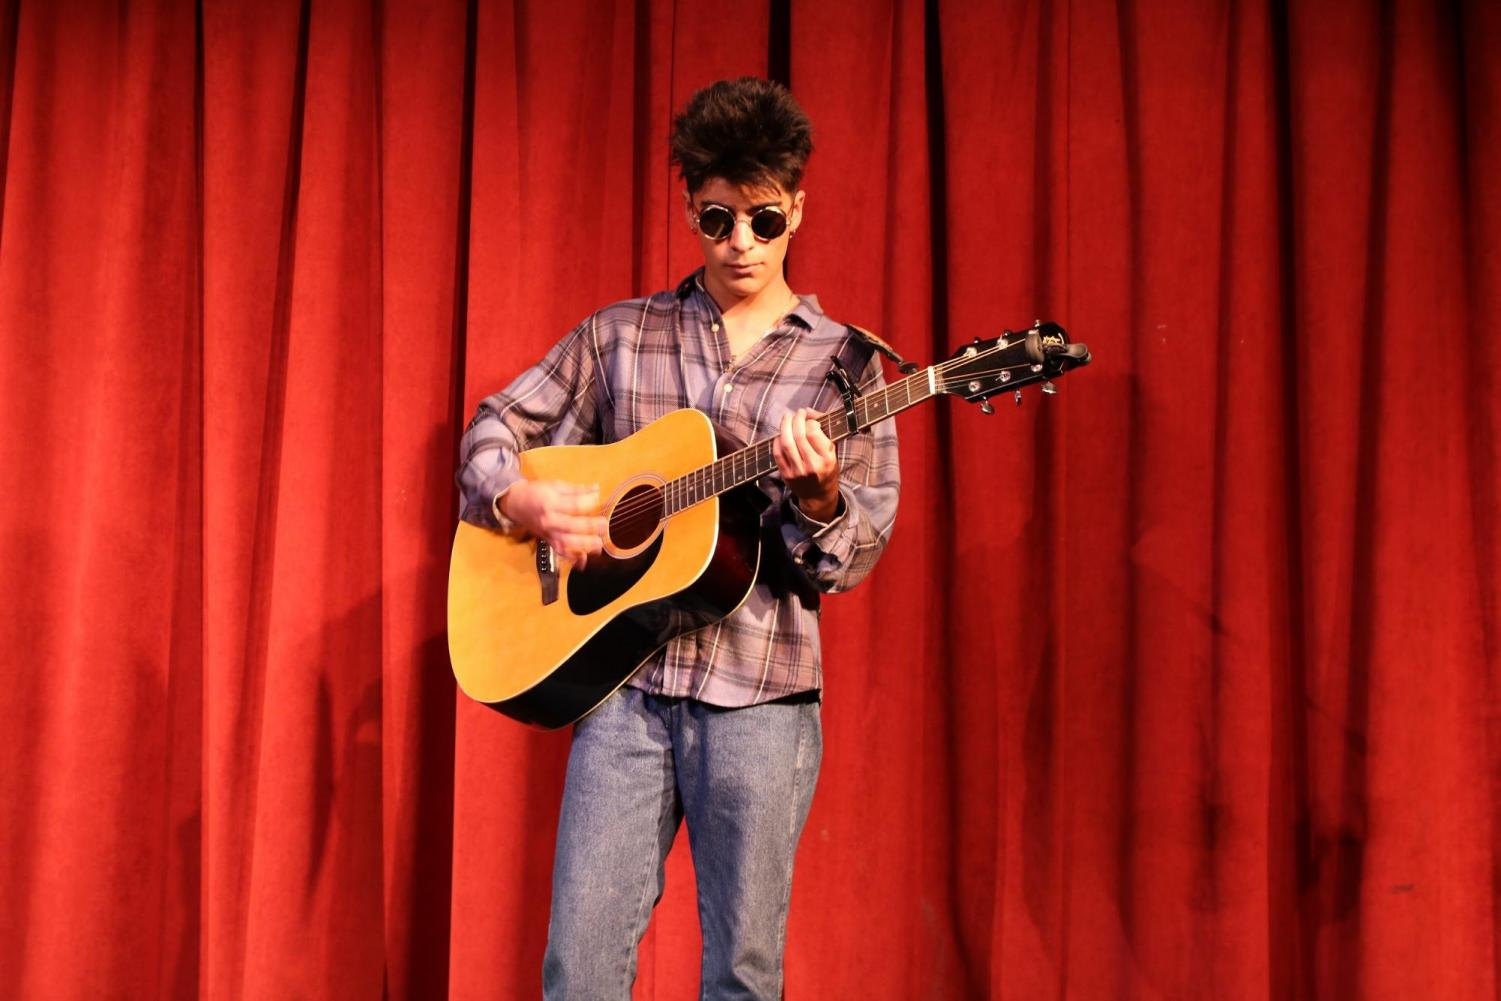 On+Feb.+28%2C+Julian+Martinez%2C+12%2C+performed+an+original+song+during+the+third+annual+Poetry+Slam+in+the+DHS+Theater.+%E2%80%9CI+felt+very+comfortable+when+performing%2C%E2%80%9D+Martinez+stated.+%E2%80%9CI+focused+on+my+guitar+and+pretending+to+practice+by+myself%2C+so+it+was+really+easy+to+be+in+front+of+so+many+people.%E2%80%9D